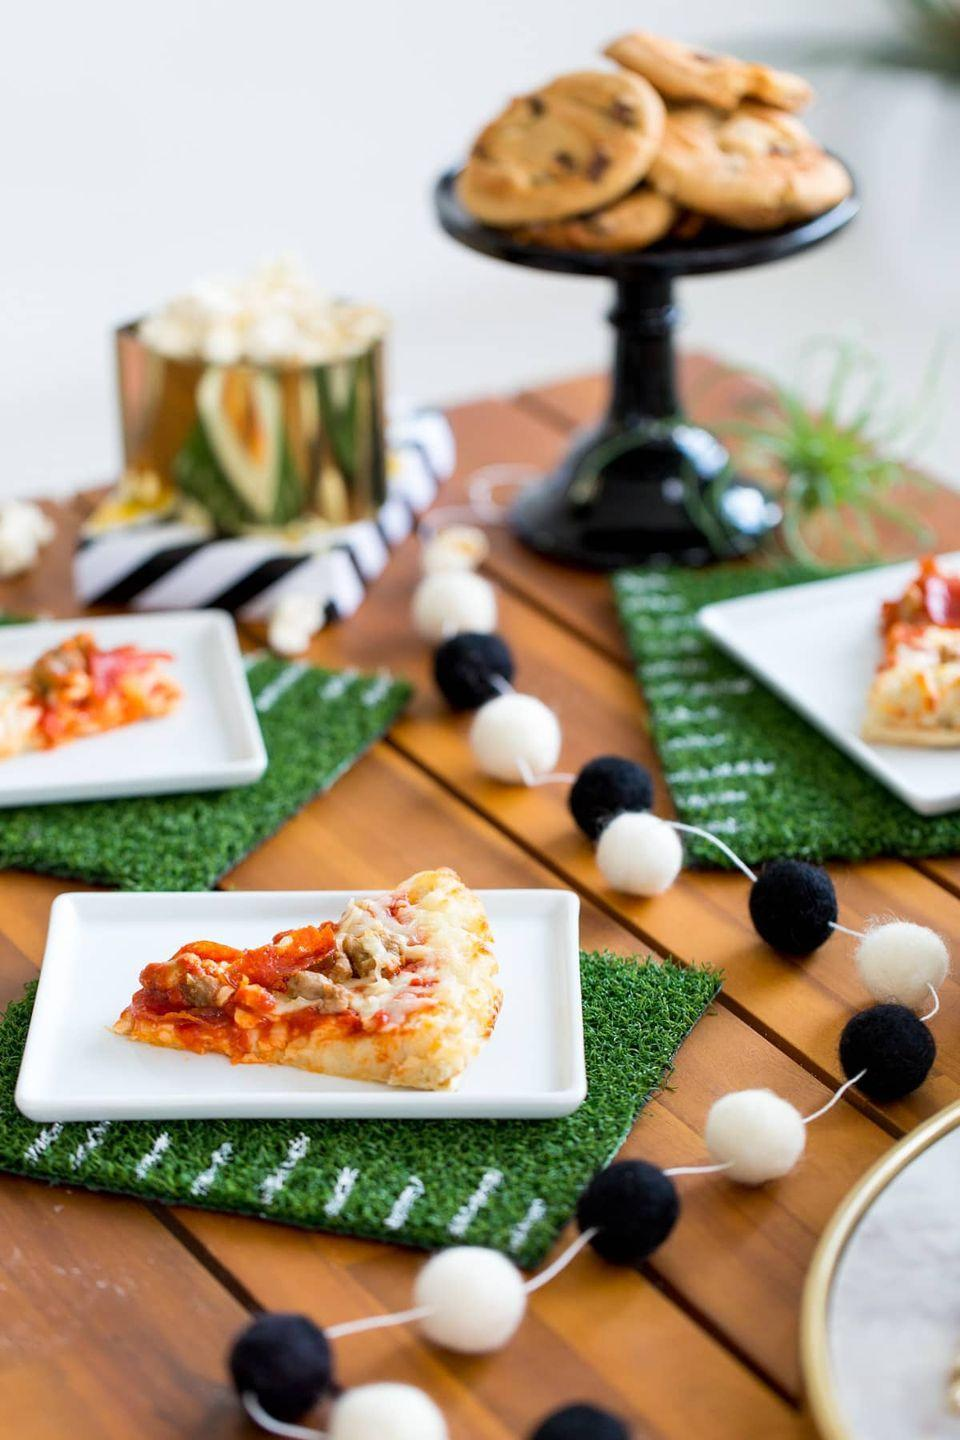 "<p>These budget-friendly placemats will make your guests feel like they're really getting in on the action. Plus, all you really need to make them is a little bit of astroturf, scissors, and white paint. </p><p><em><a href=""https://sugarandcloth.com/tailgate-tips-diy-football-coasters-placemats/"" rel=""nofollow noopener"" target=""_blank"" data-ylk=""slk:Get the tutorial at Sugar and Cloth »"" class=""link rapid-noclick-resp"">Get the tutorial at Sugar and Cloth »</a></em></p><p><a class=""link rapid-noclick-resp"" href=""https://www.amazon.com/Juvale-Artificial-Grass-Synthetic-Non-Slip/dp/B07F28DZ8F?tag=syn-yahoo-20&ascsubtag=%5Bartid%7C10055.g.4949%5Bsrc%7Cyahoo-us"" rel=""nofollow noopener"" target=""_blank"" data-ylk=""slk:SHOP ASTROTURF PATCHES"">SHOP ASTROTURF PATCHES</a><em><br></em></p>"